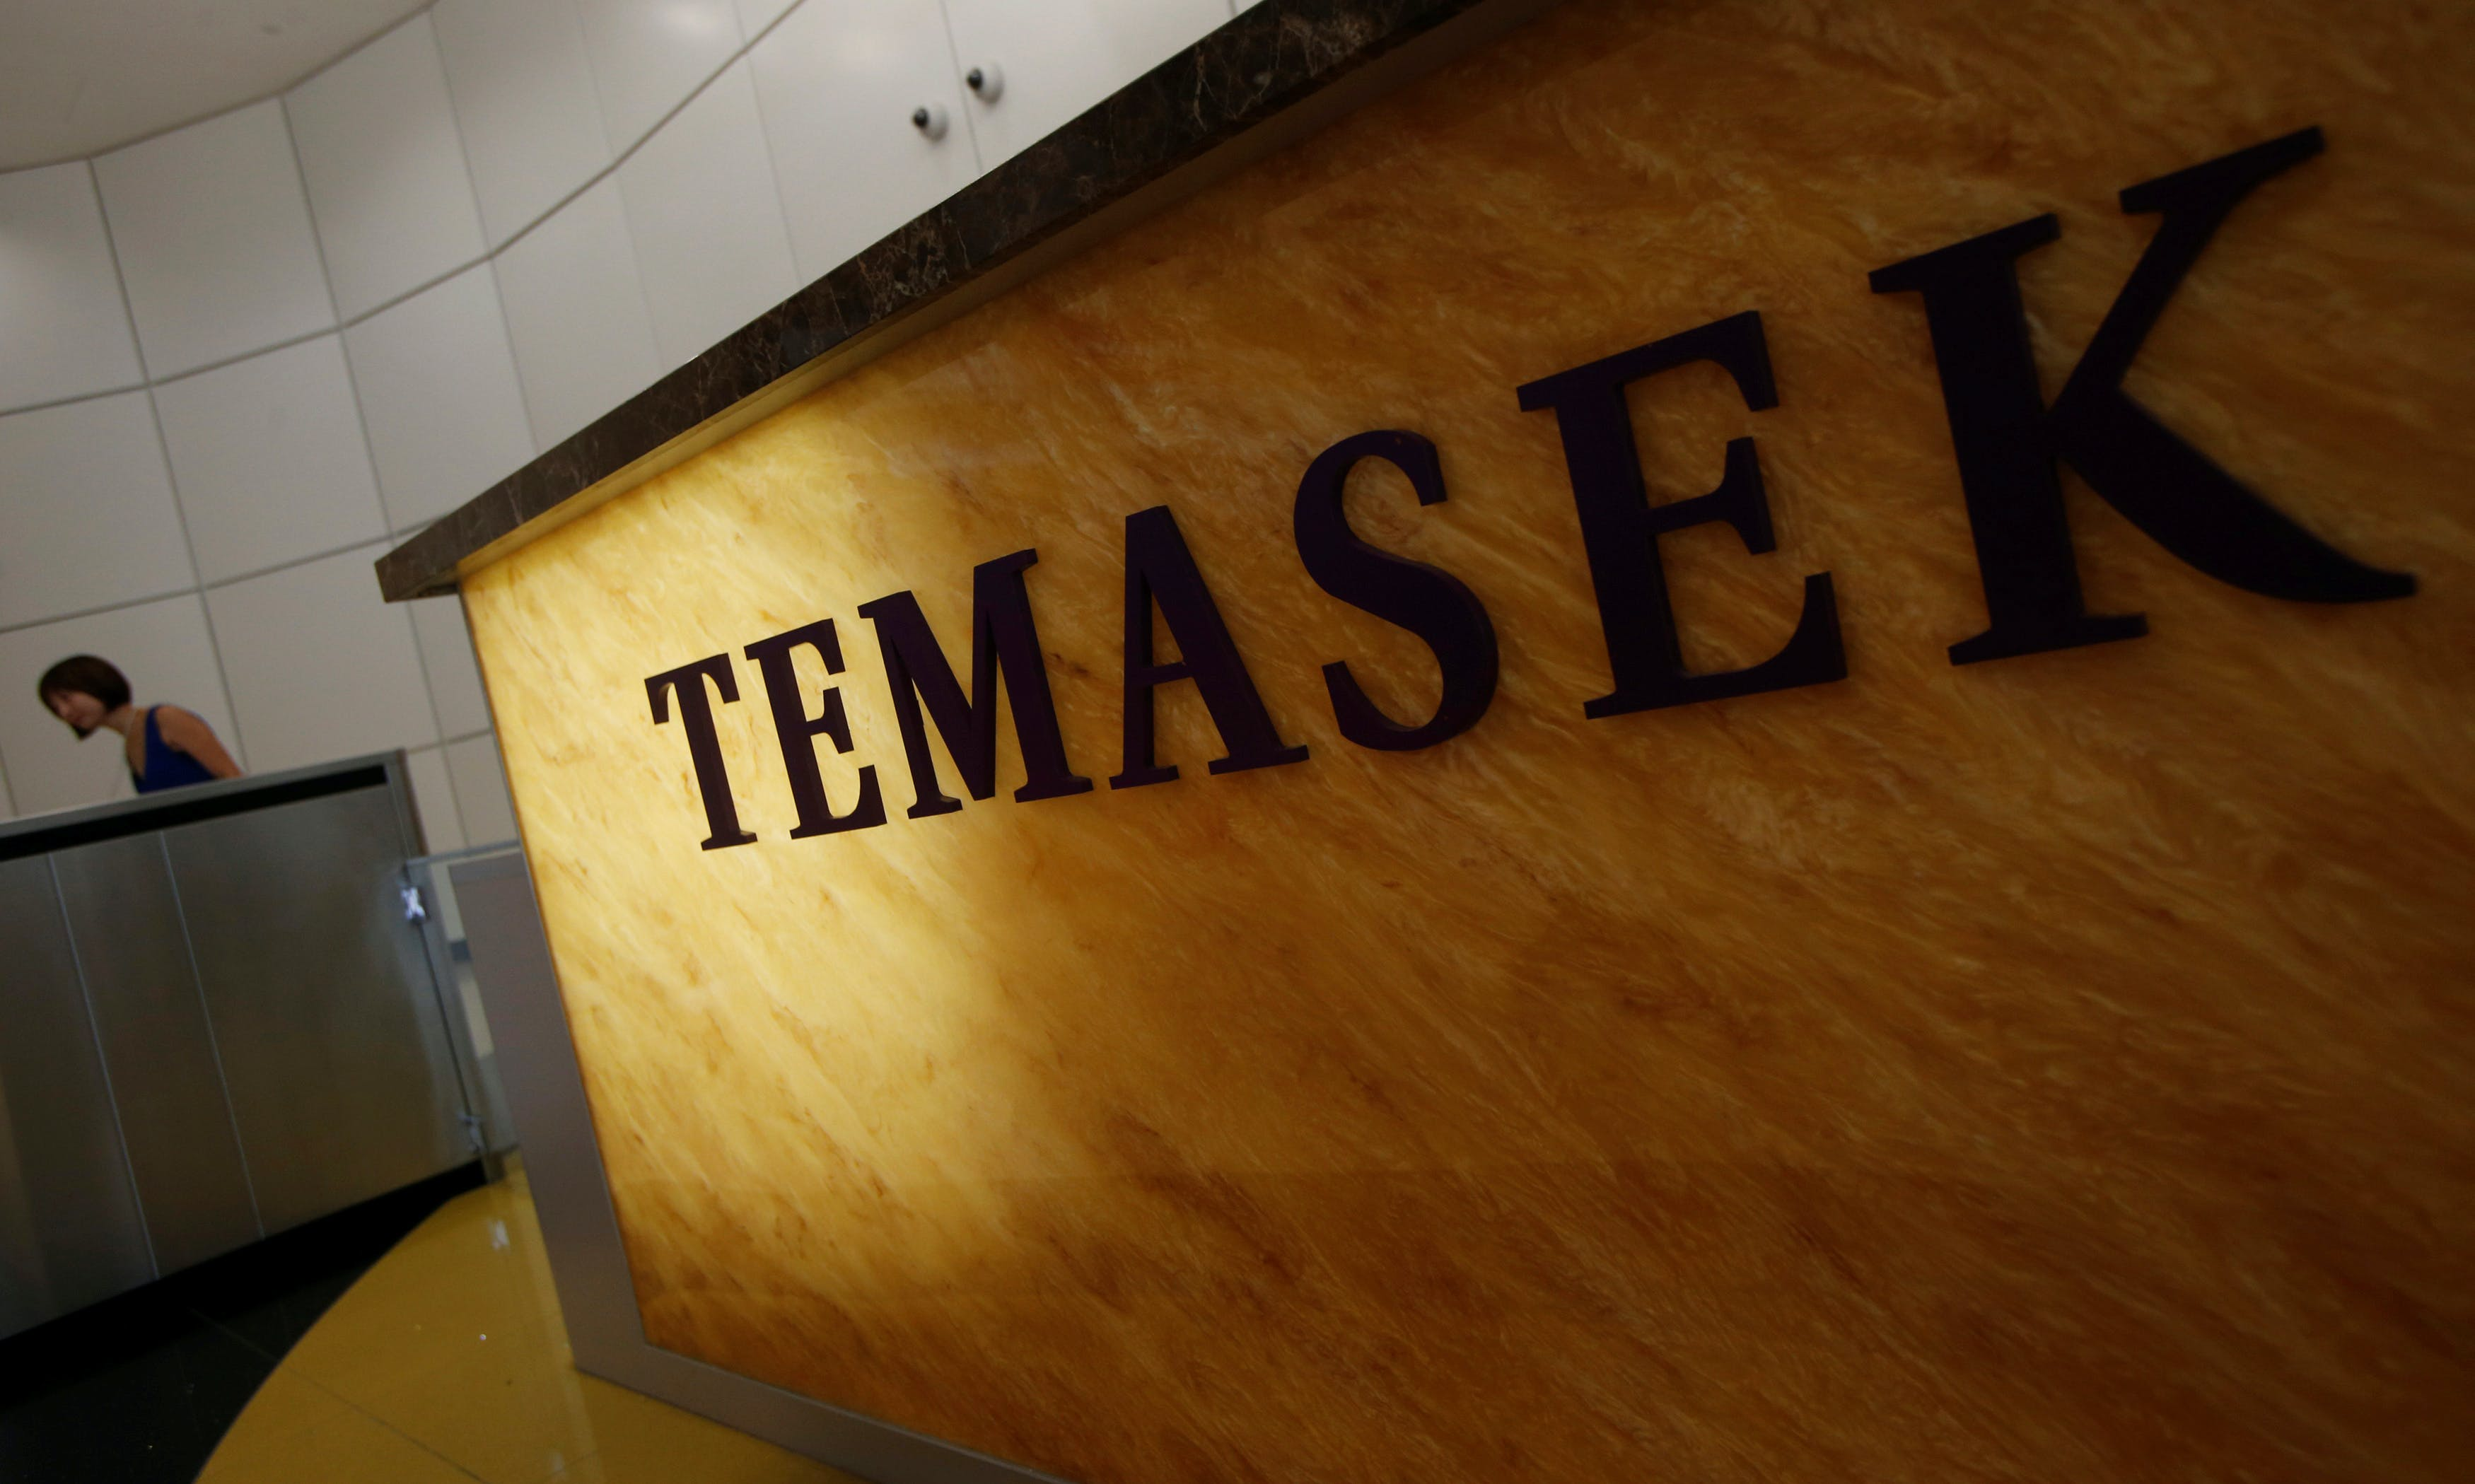 ANALYSIS: Why Temasek Holdings' Singapore Pensions Claim Is Tosh